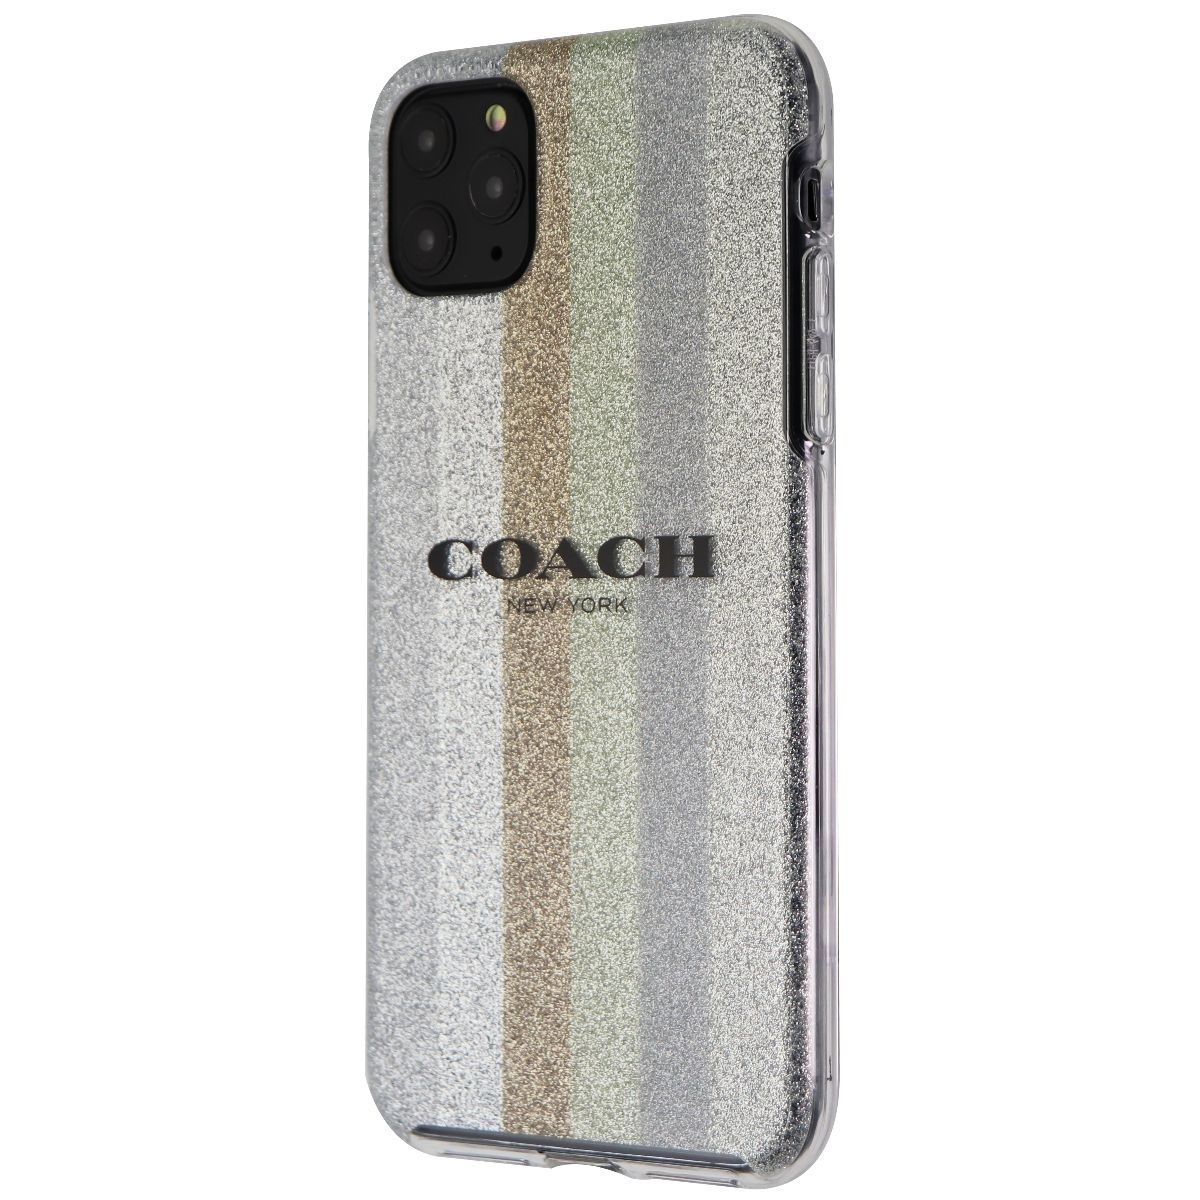 Coach protective case for apple iphone 11 pro max 65inch